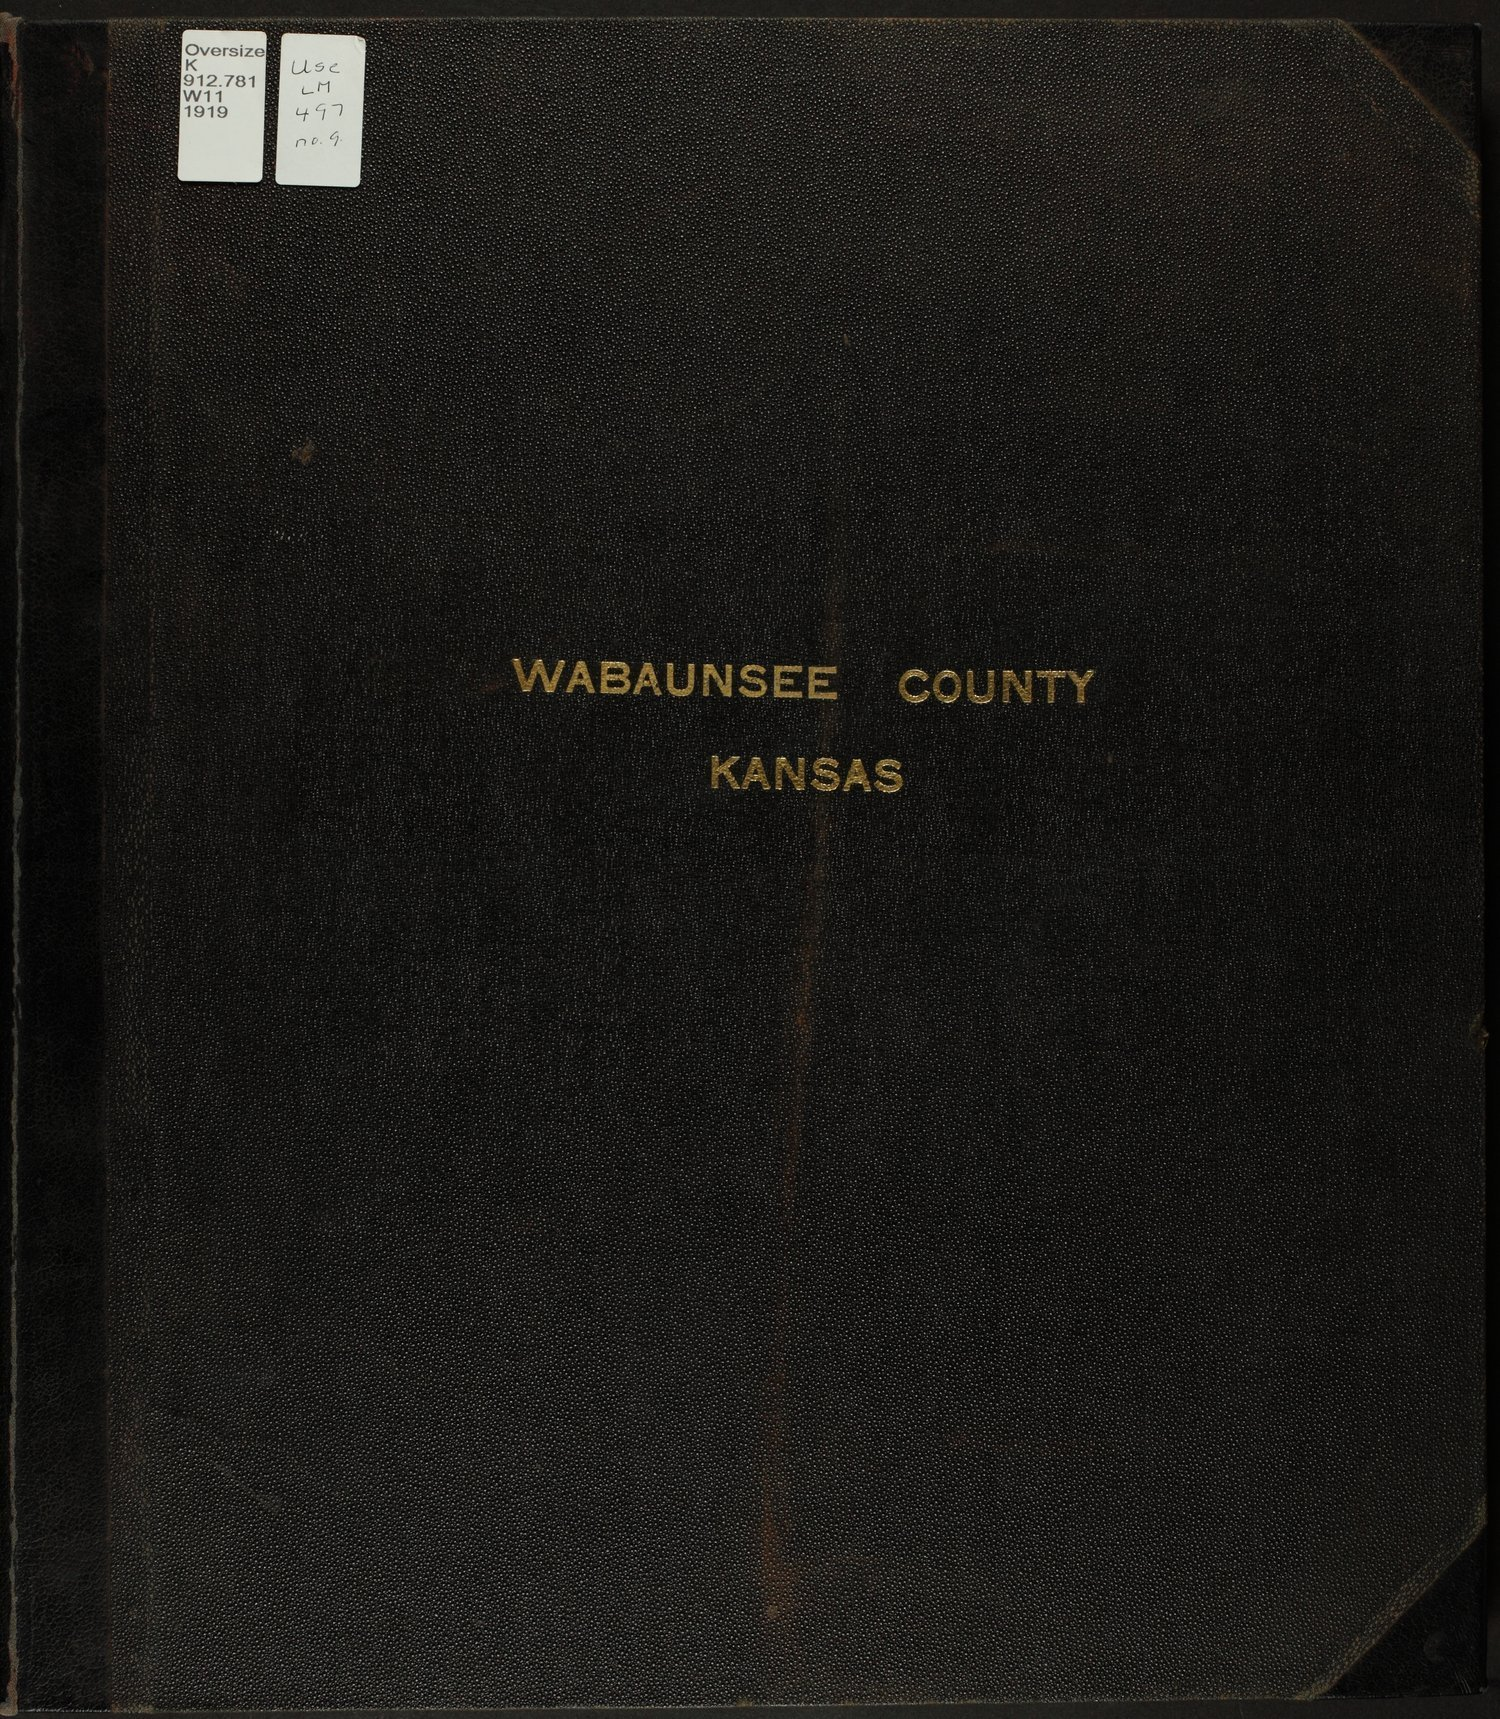 Standard atlas of Wabaunsee County, Kansas - Front Cover